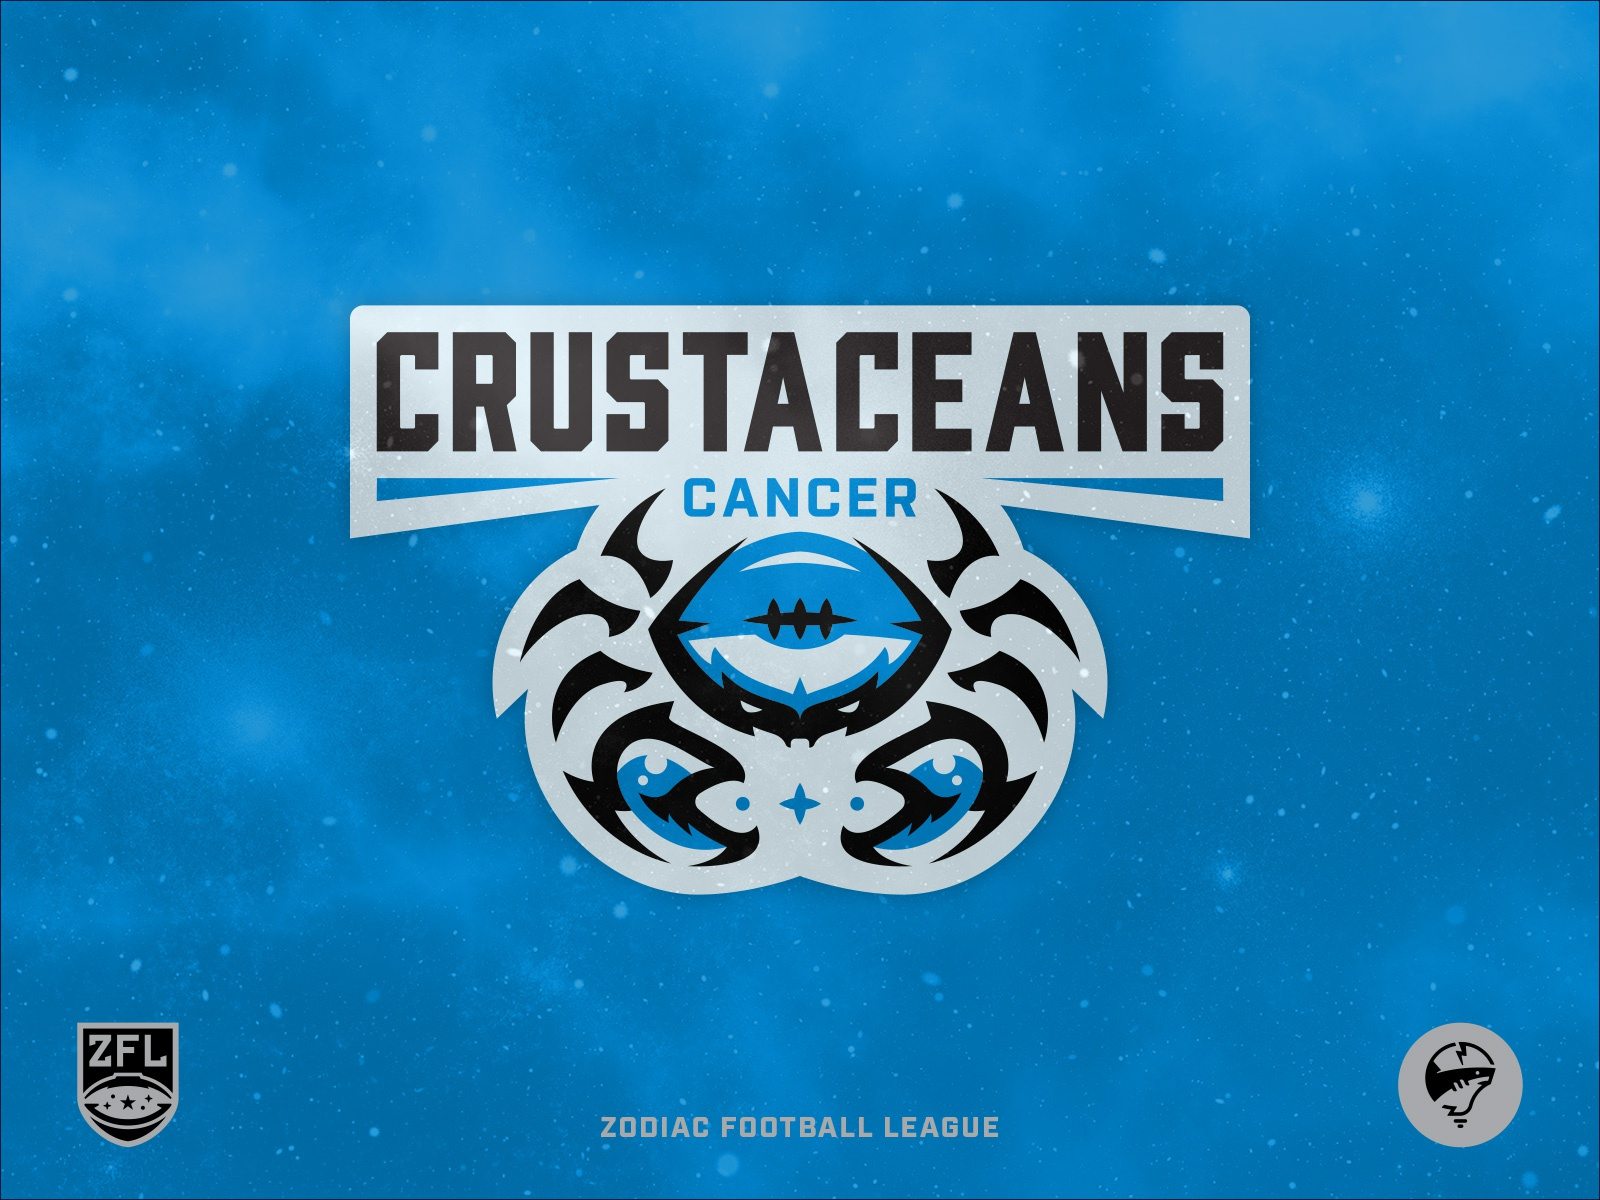 Zfl cancer crustaceans dribbble 1